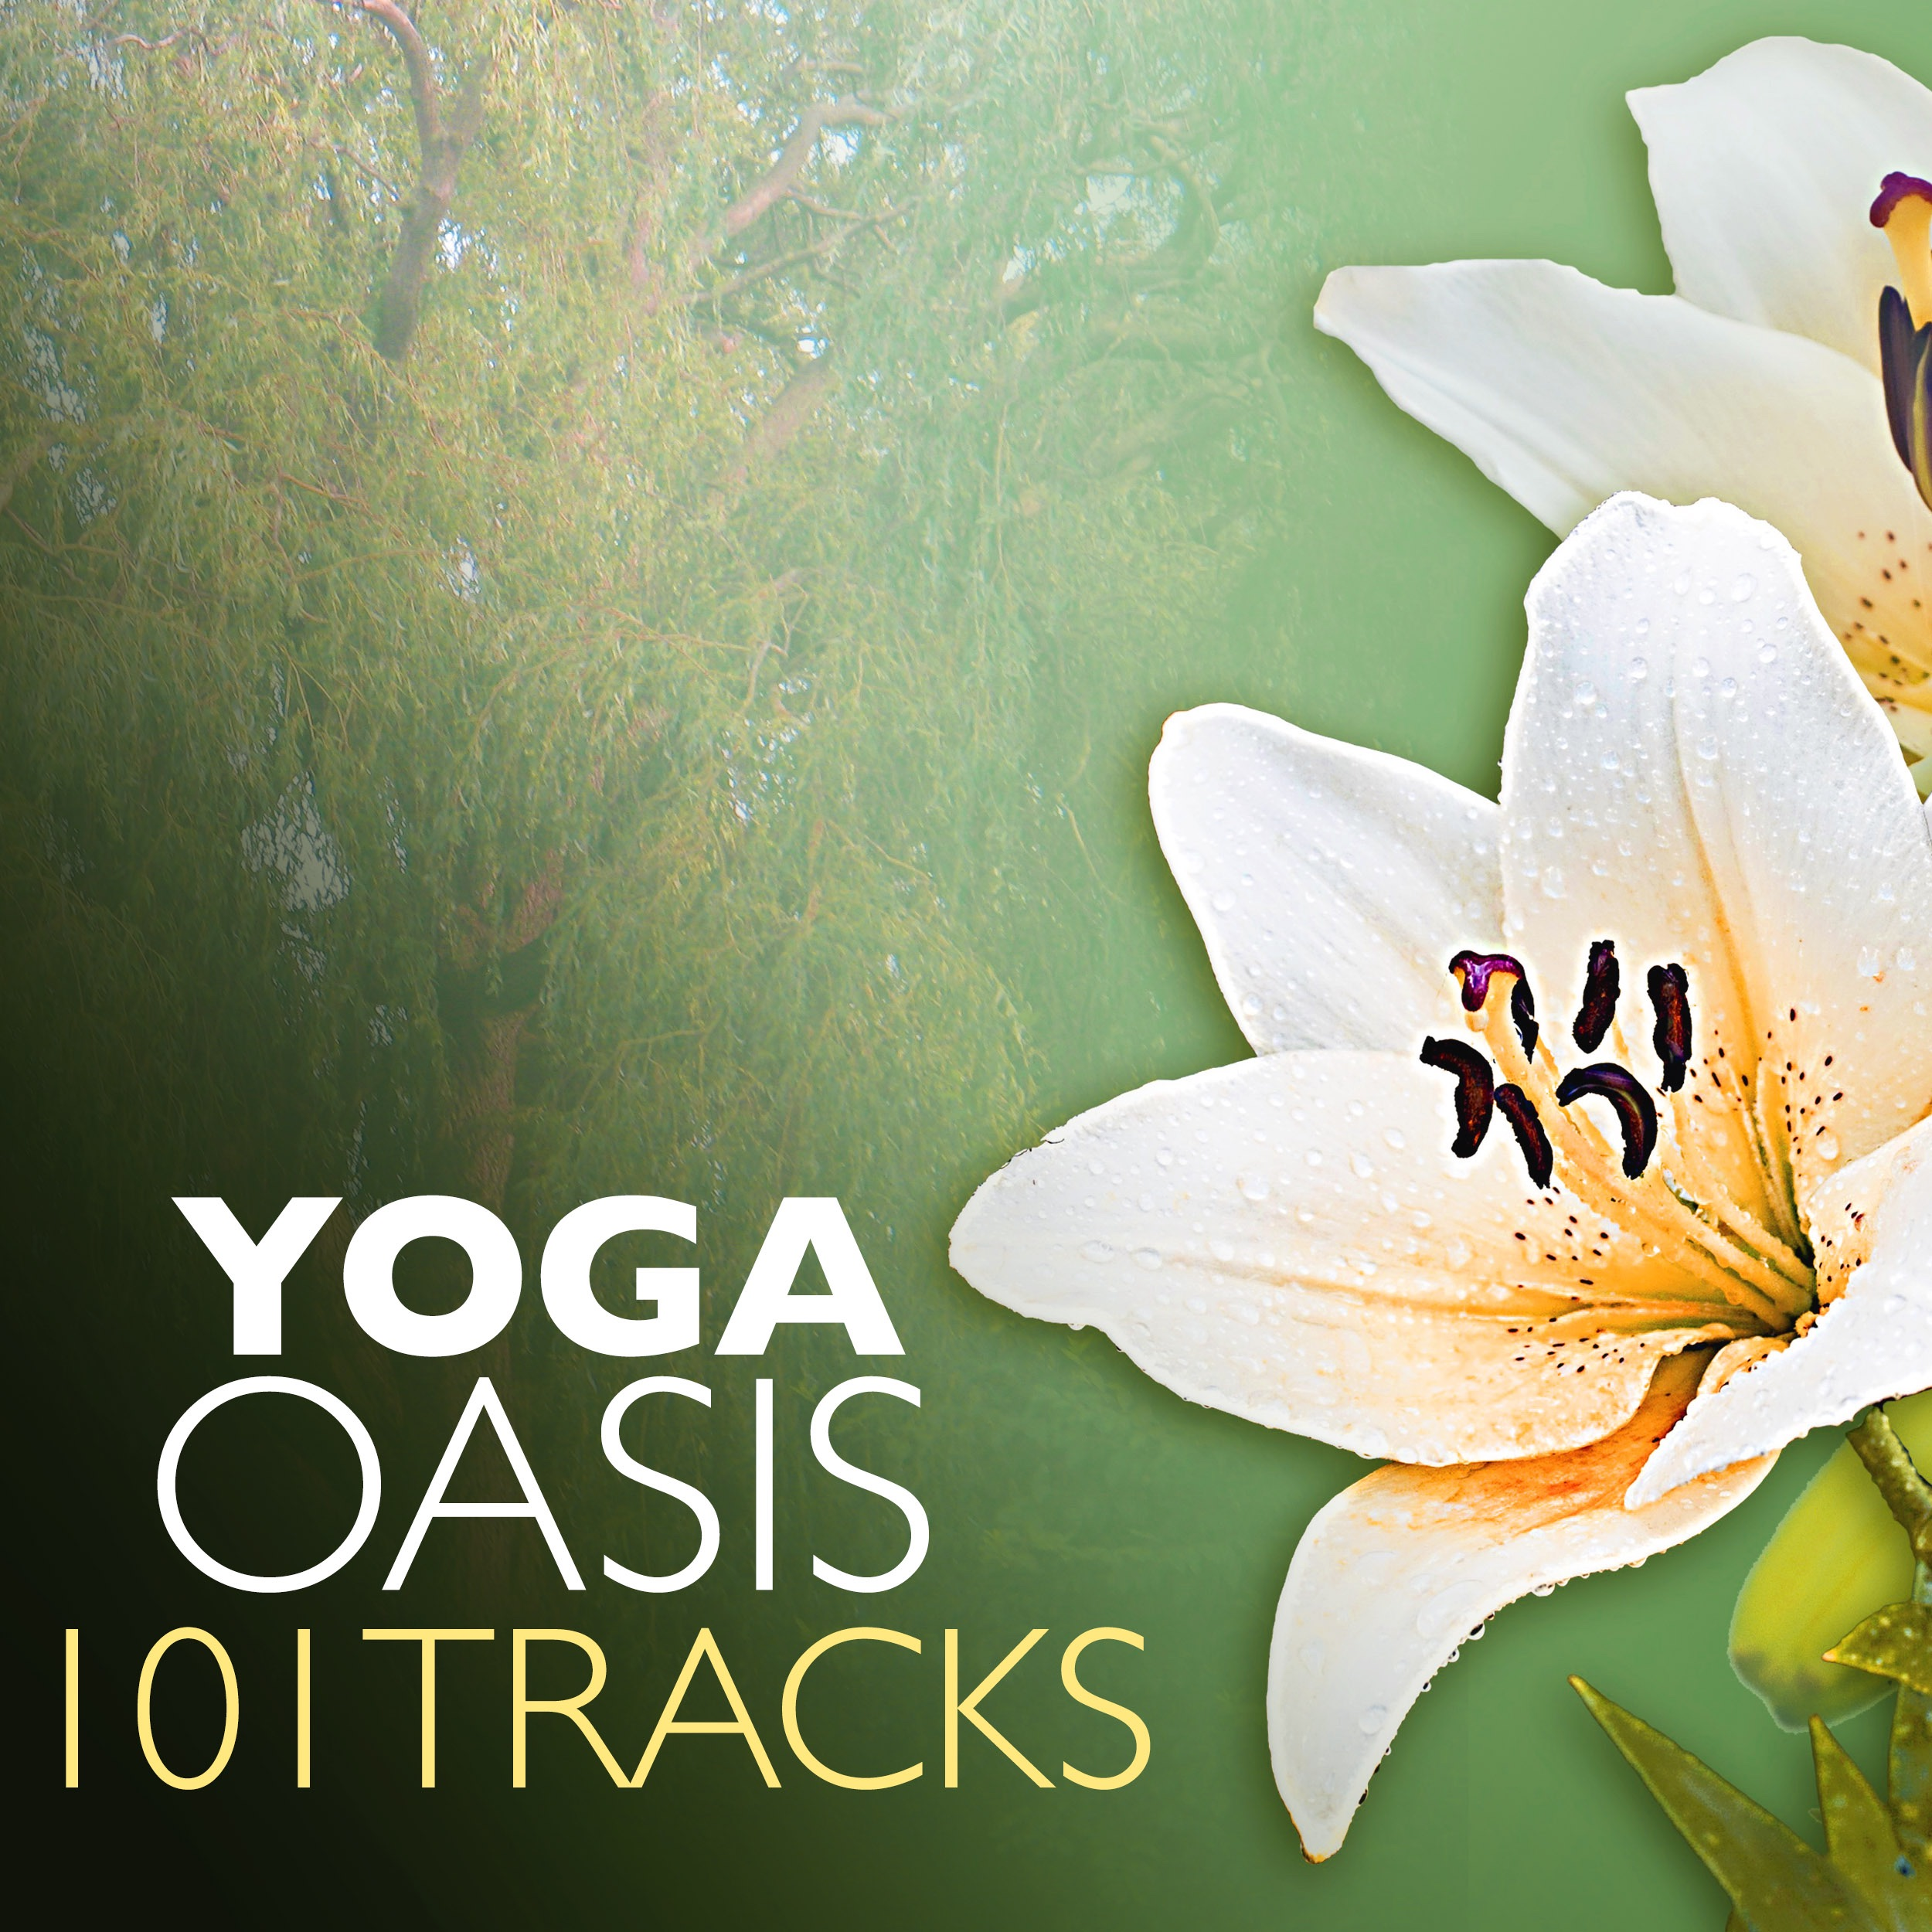 MP3 Songs Online:♫ Empathy - Yoga Music Maestro album Yoga Oasis 101 - Tracks for Yoga Classes, Rajyoga Meditation and Mindfulness Practice. Instrumental,Music,New Age listen to music online free without downloading.